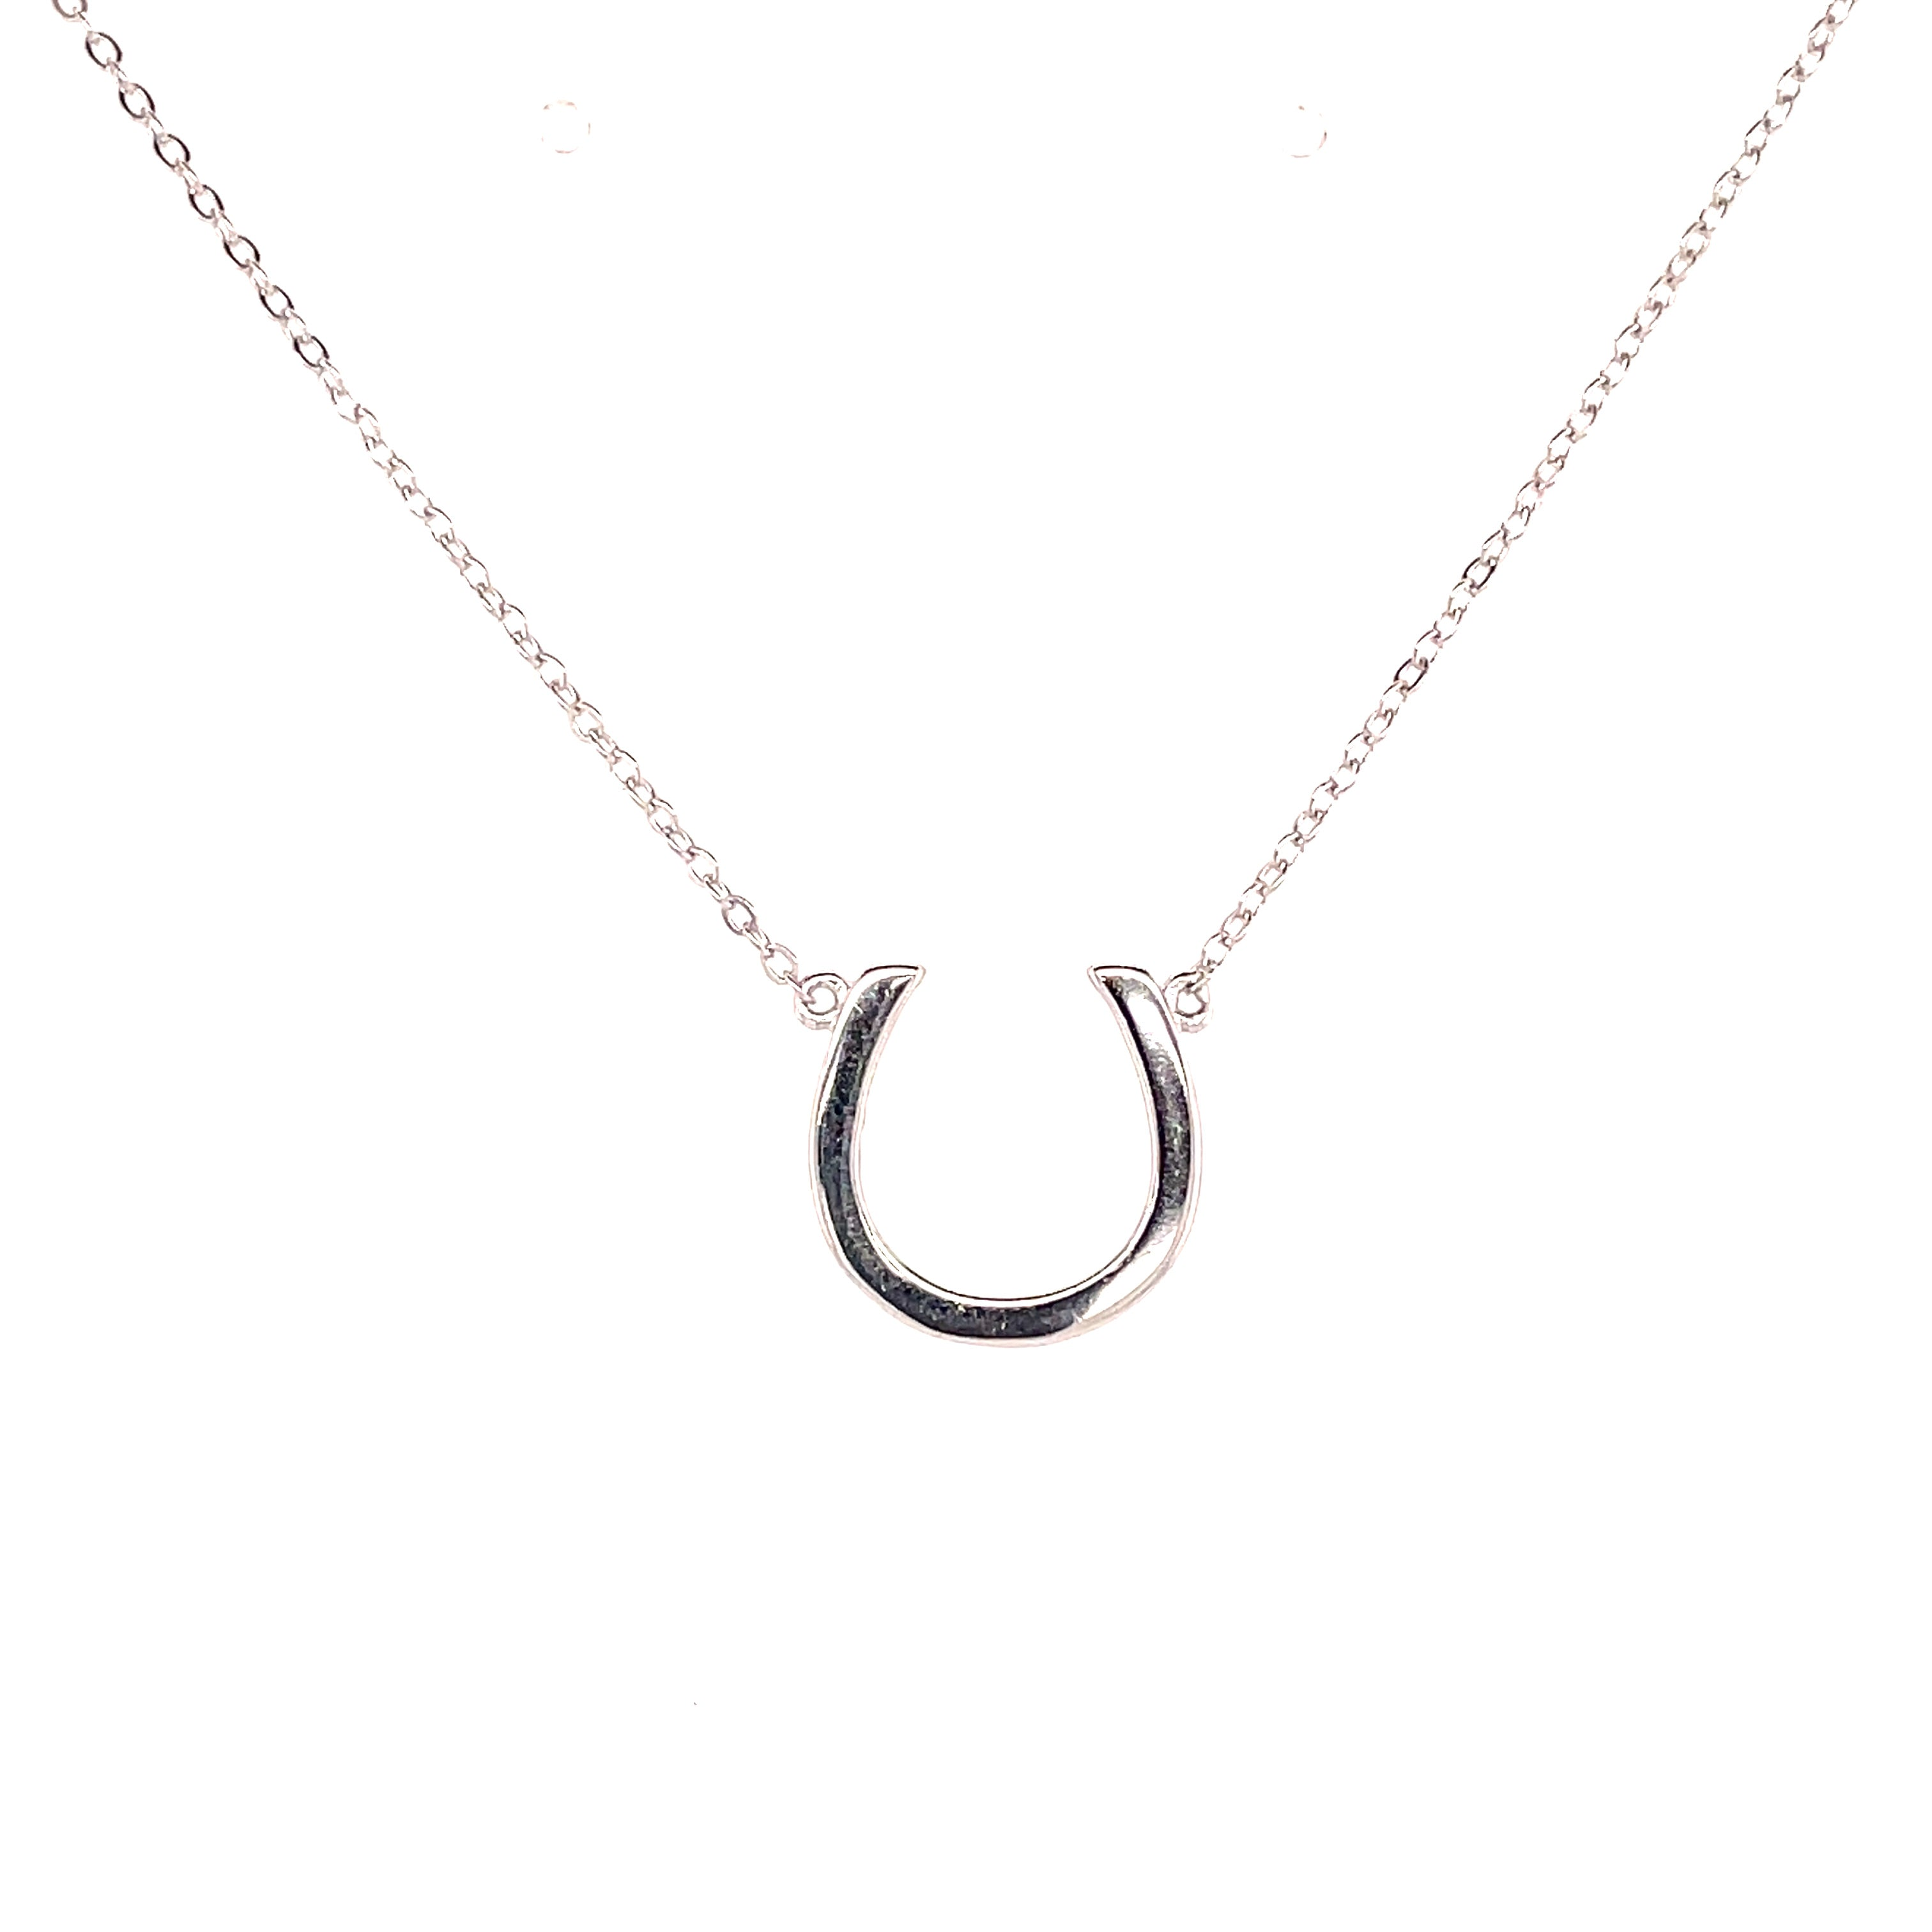 Simple equestrian horseshoe necklace sterling silver